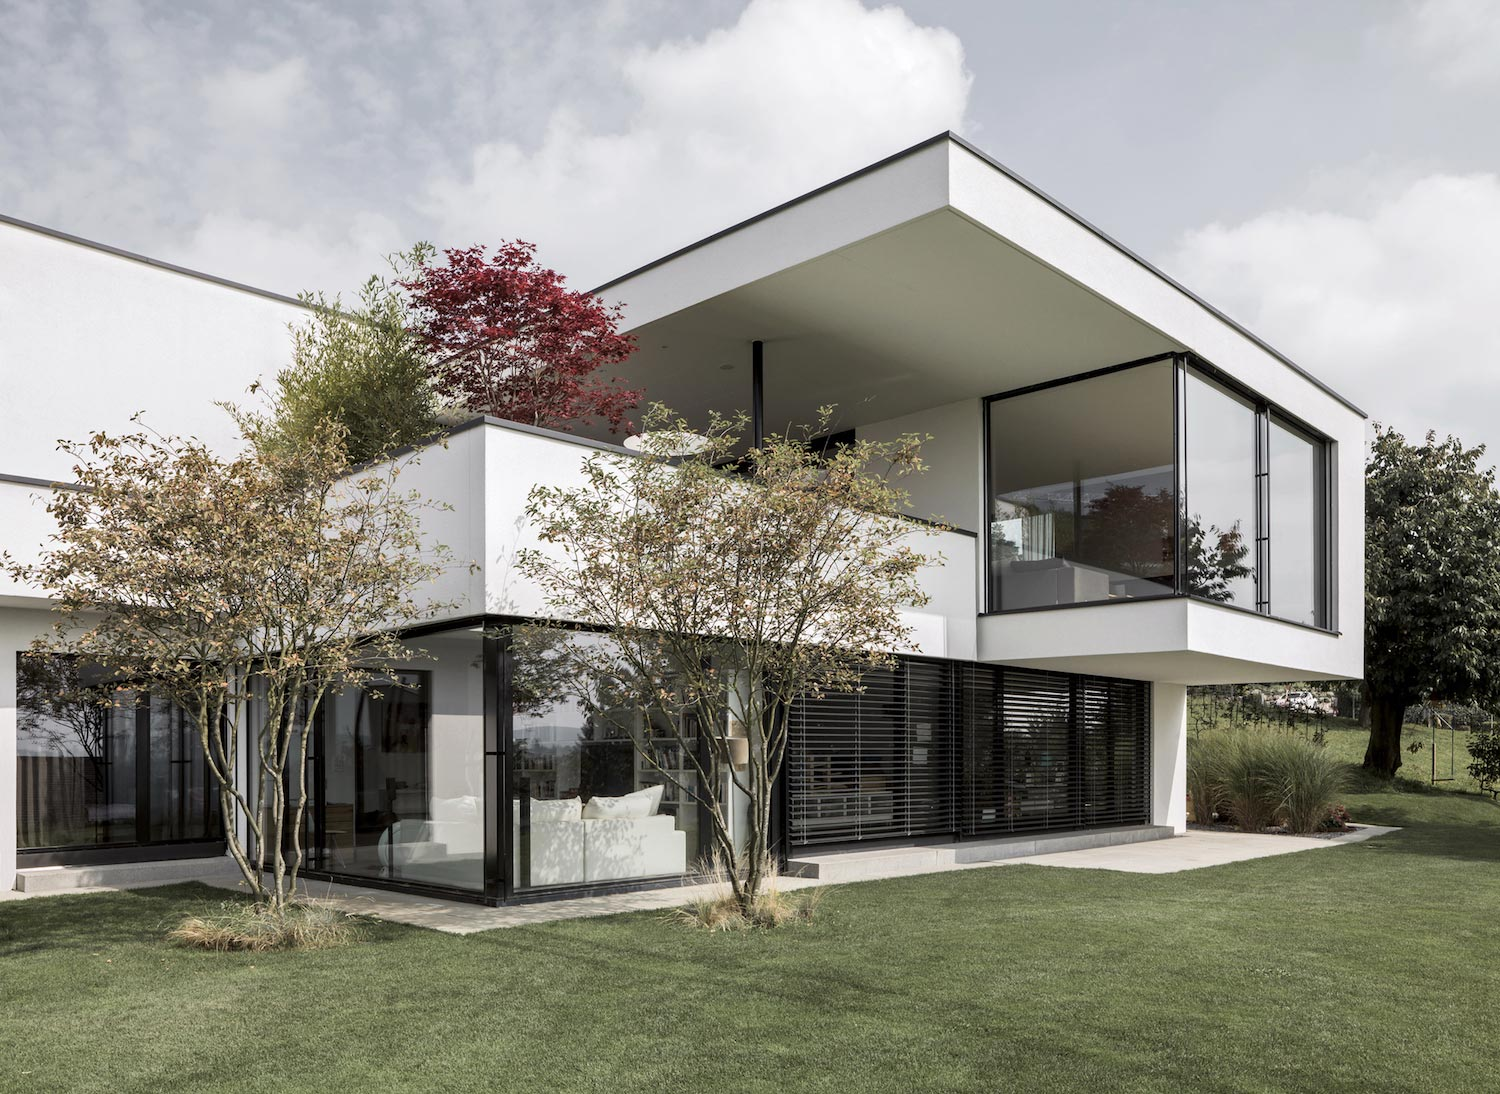 Design house of quality - Quality Comfort And Design Enabling The Highest Quality Of Life Of Objekt 254 Villa Designed By Meier Architekten Caandesign Architecture And Home